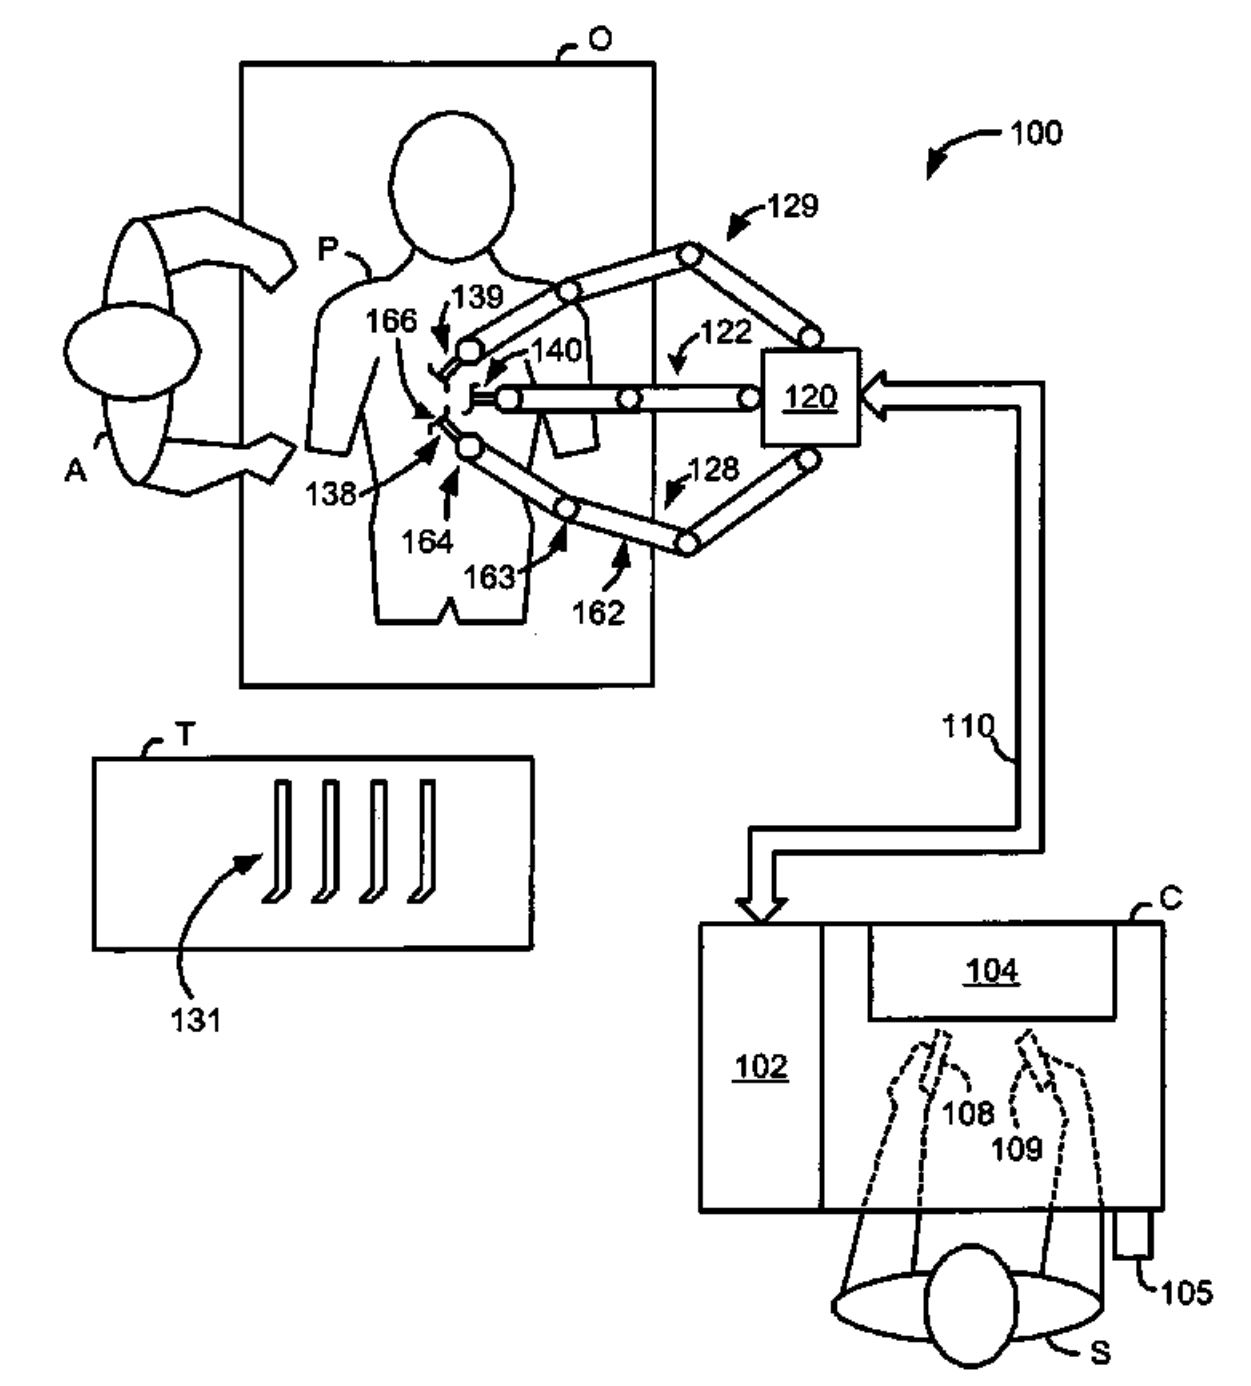 figure from patent for surgical robot showing control, patient, and proposed surgical field